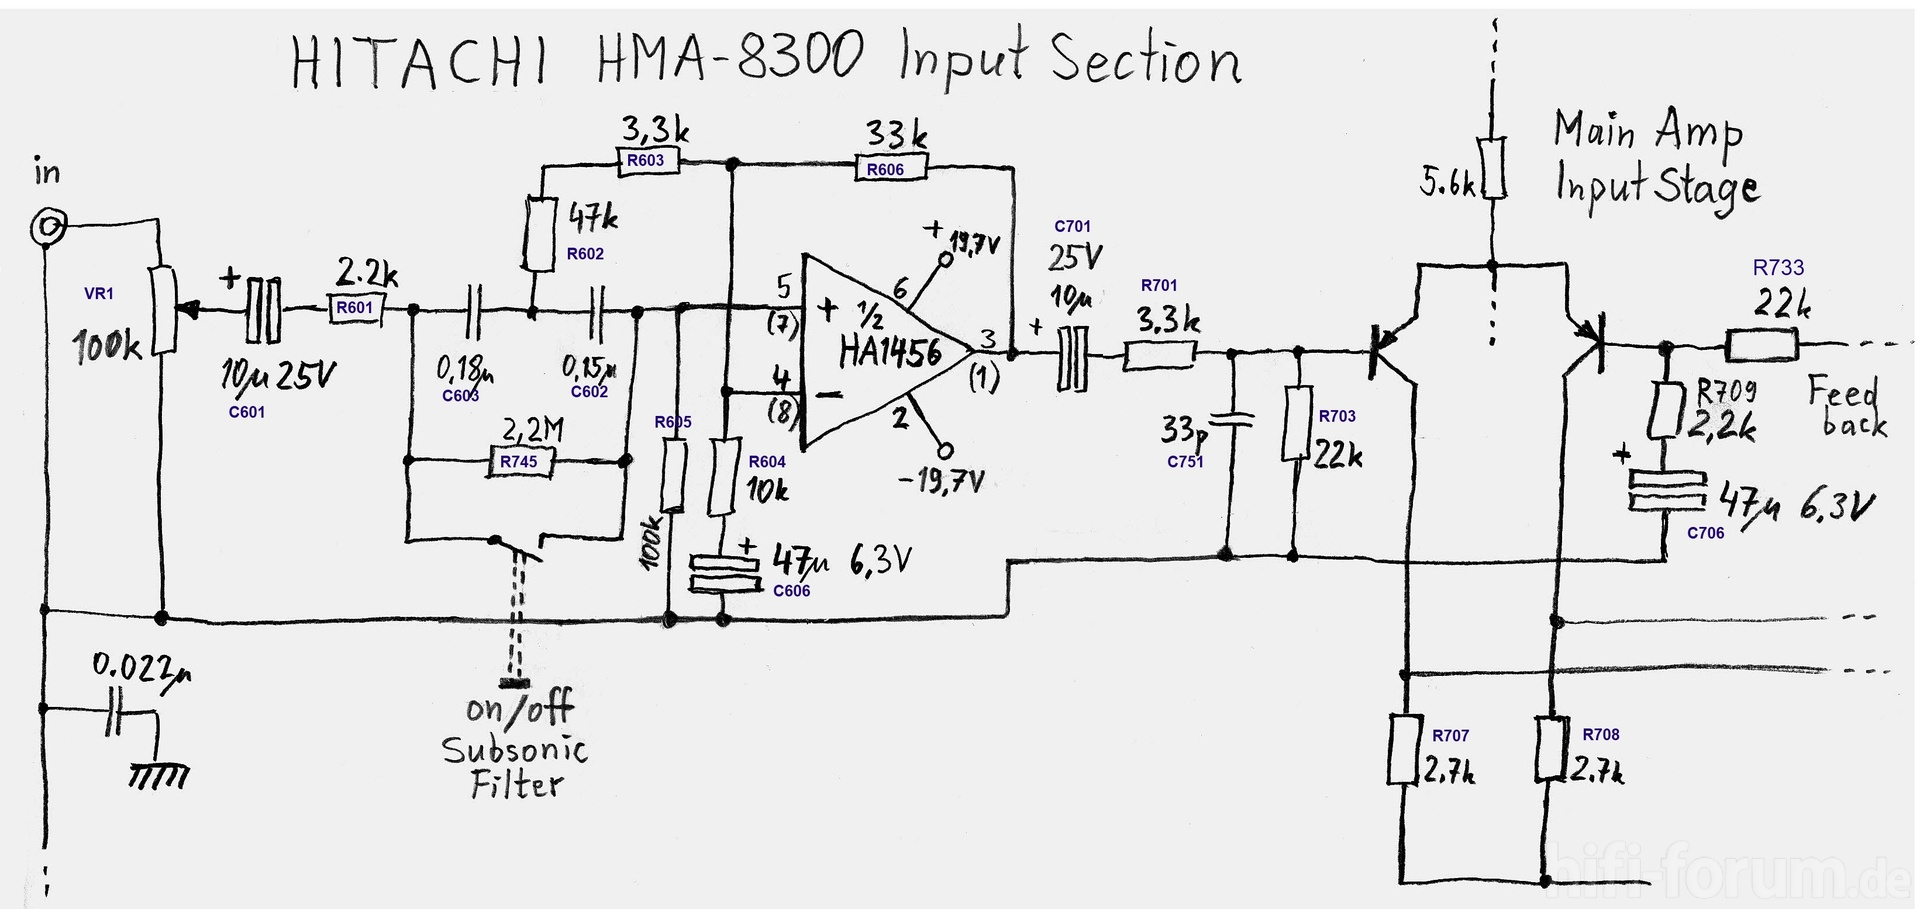 Subsonic Filter 300w Car Amplifier With Phase Shift 90 Shifter Circuit Diagram Tradeoficcom Hitachi Hma 8300 Power Input Section